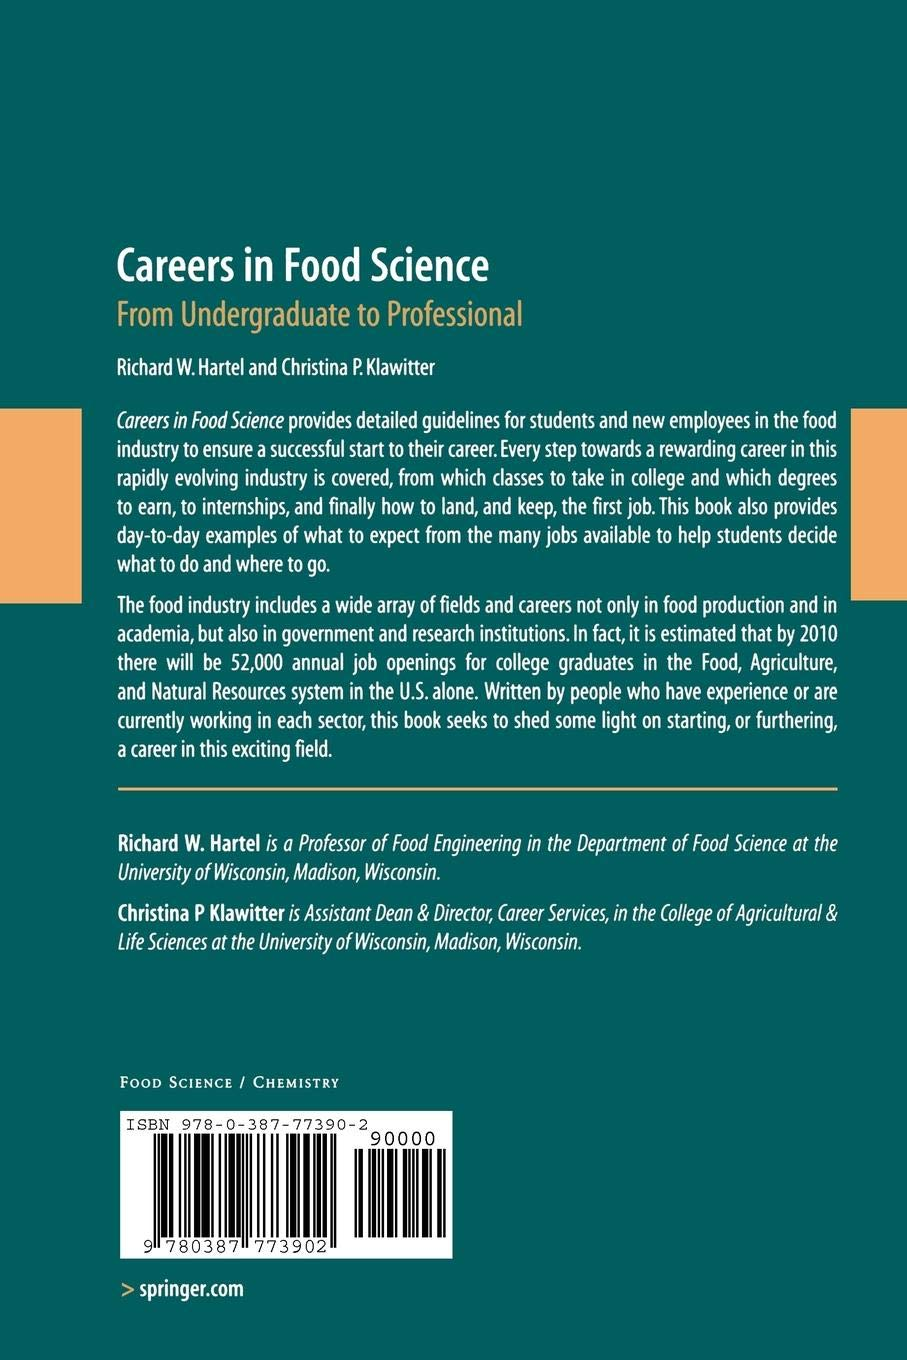 What do you want to do with Food Science & Technology?